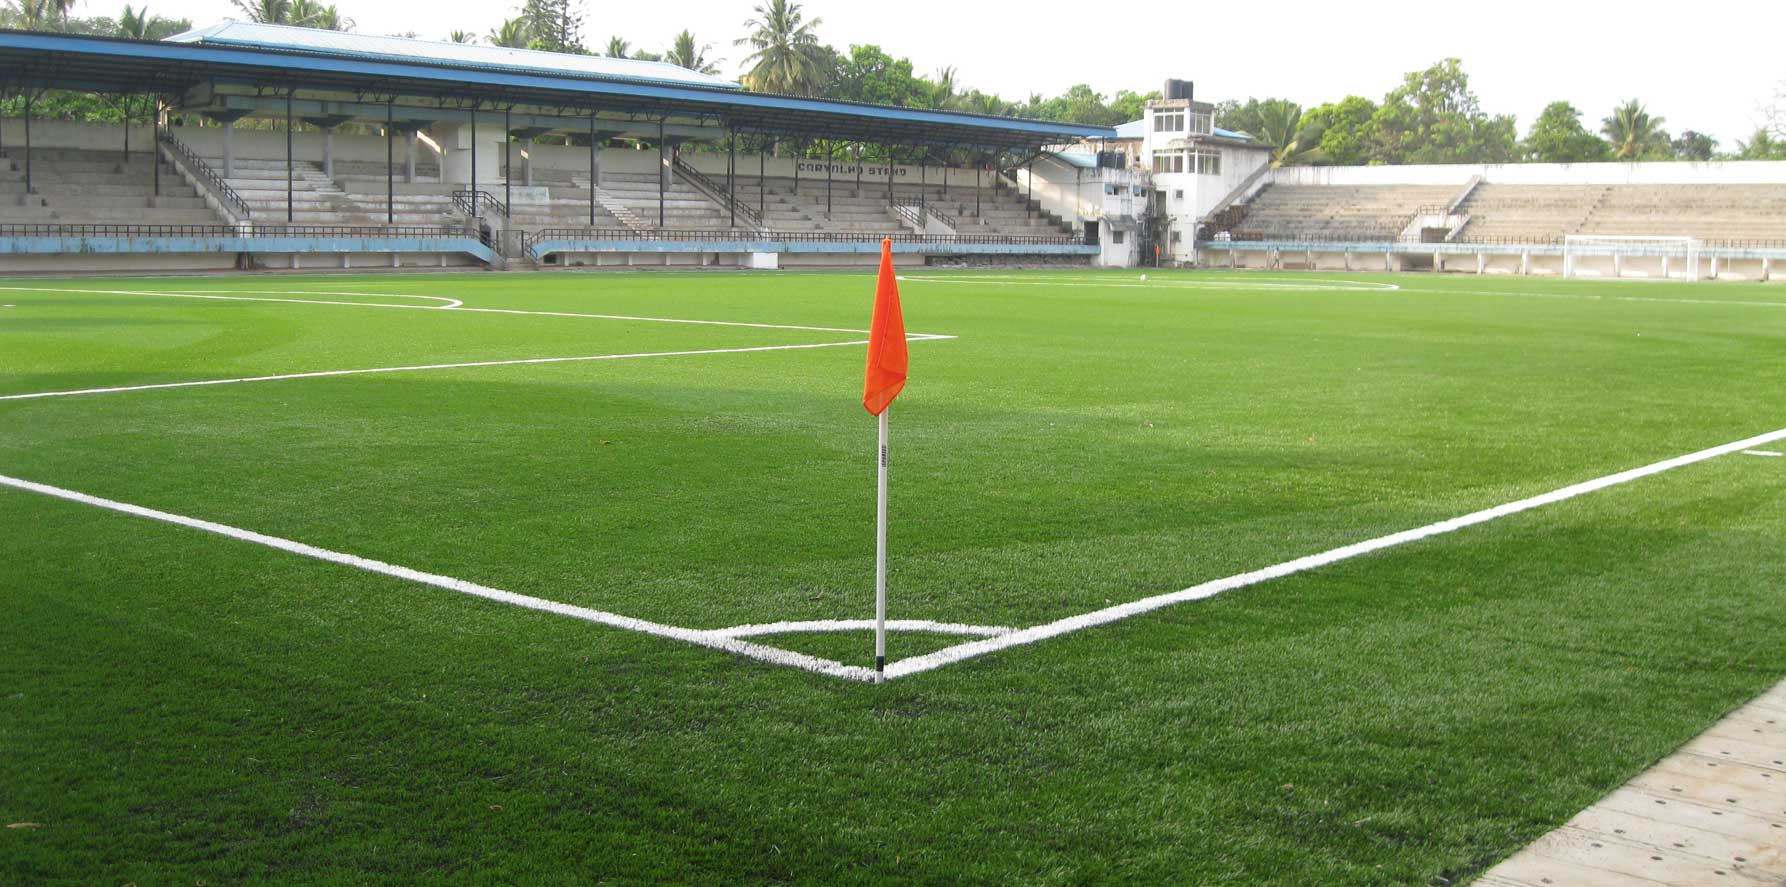 The Duler Stadium will host the majority of the matches in the Goa Pro League. Photo Courtesy: acosasportsinfra.com